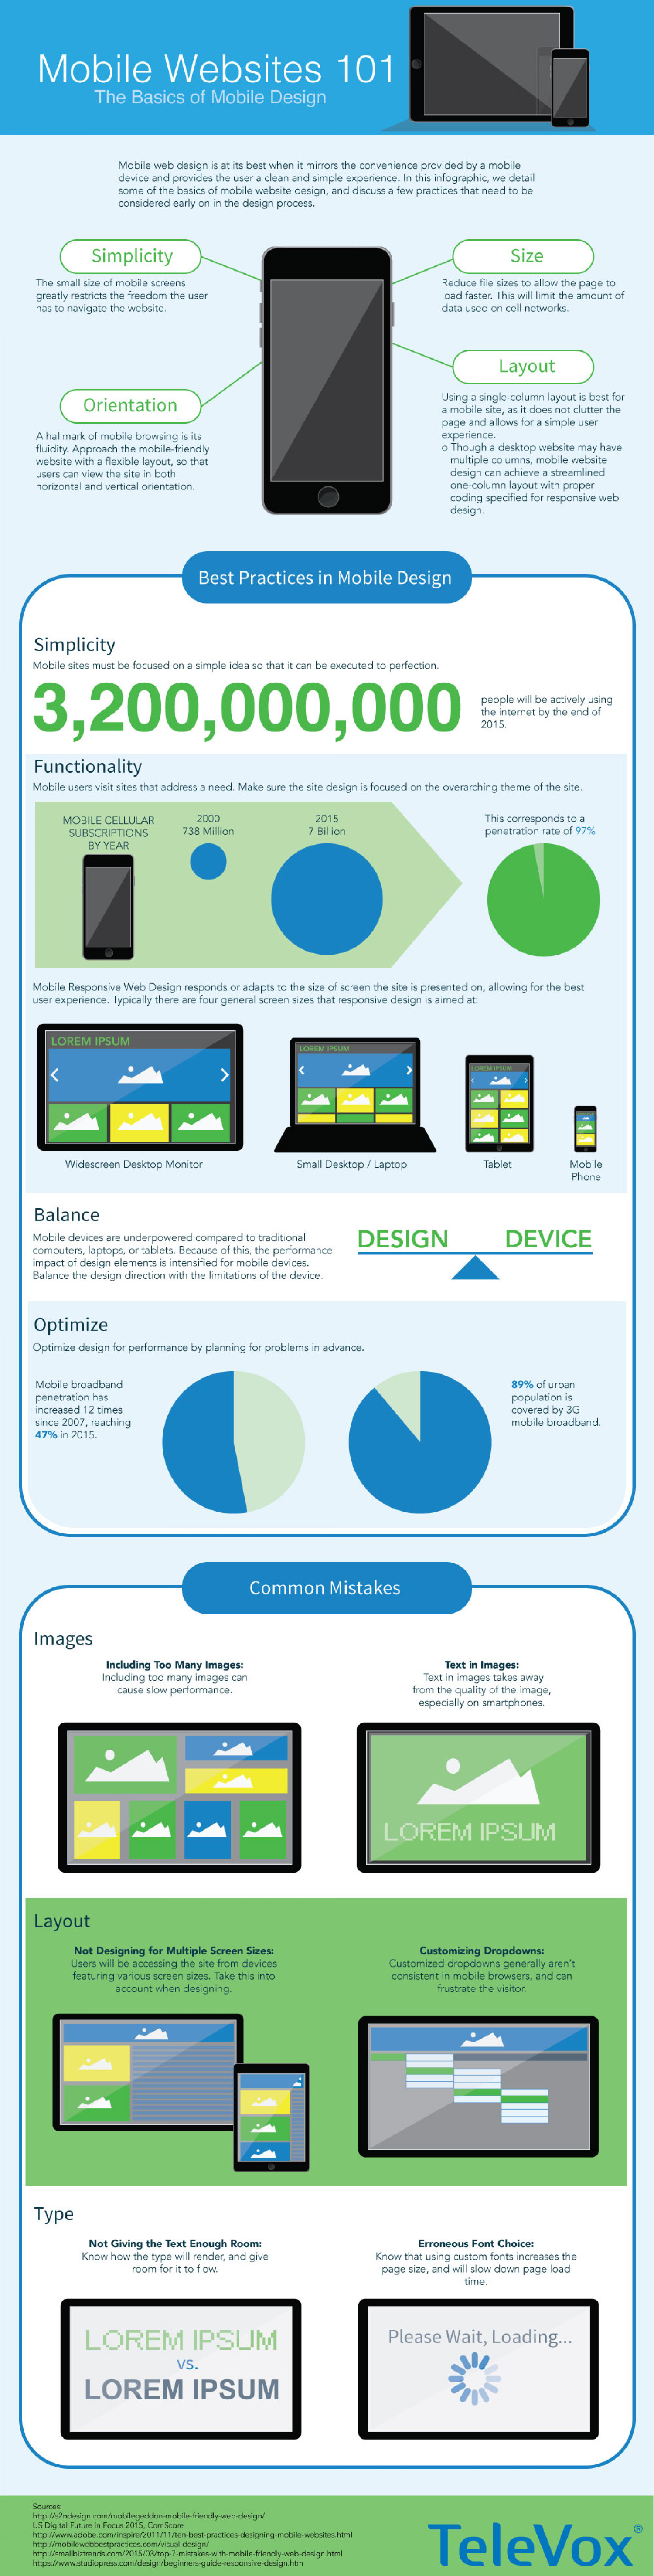 Mobile Websites 101  Infographic